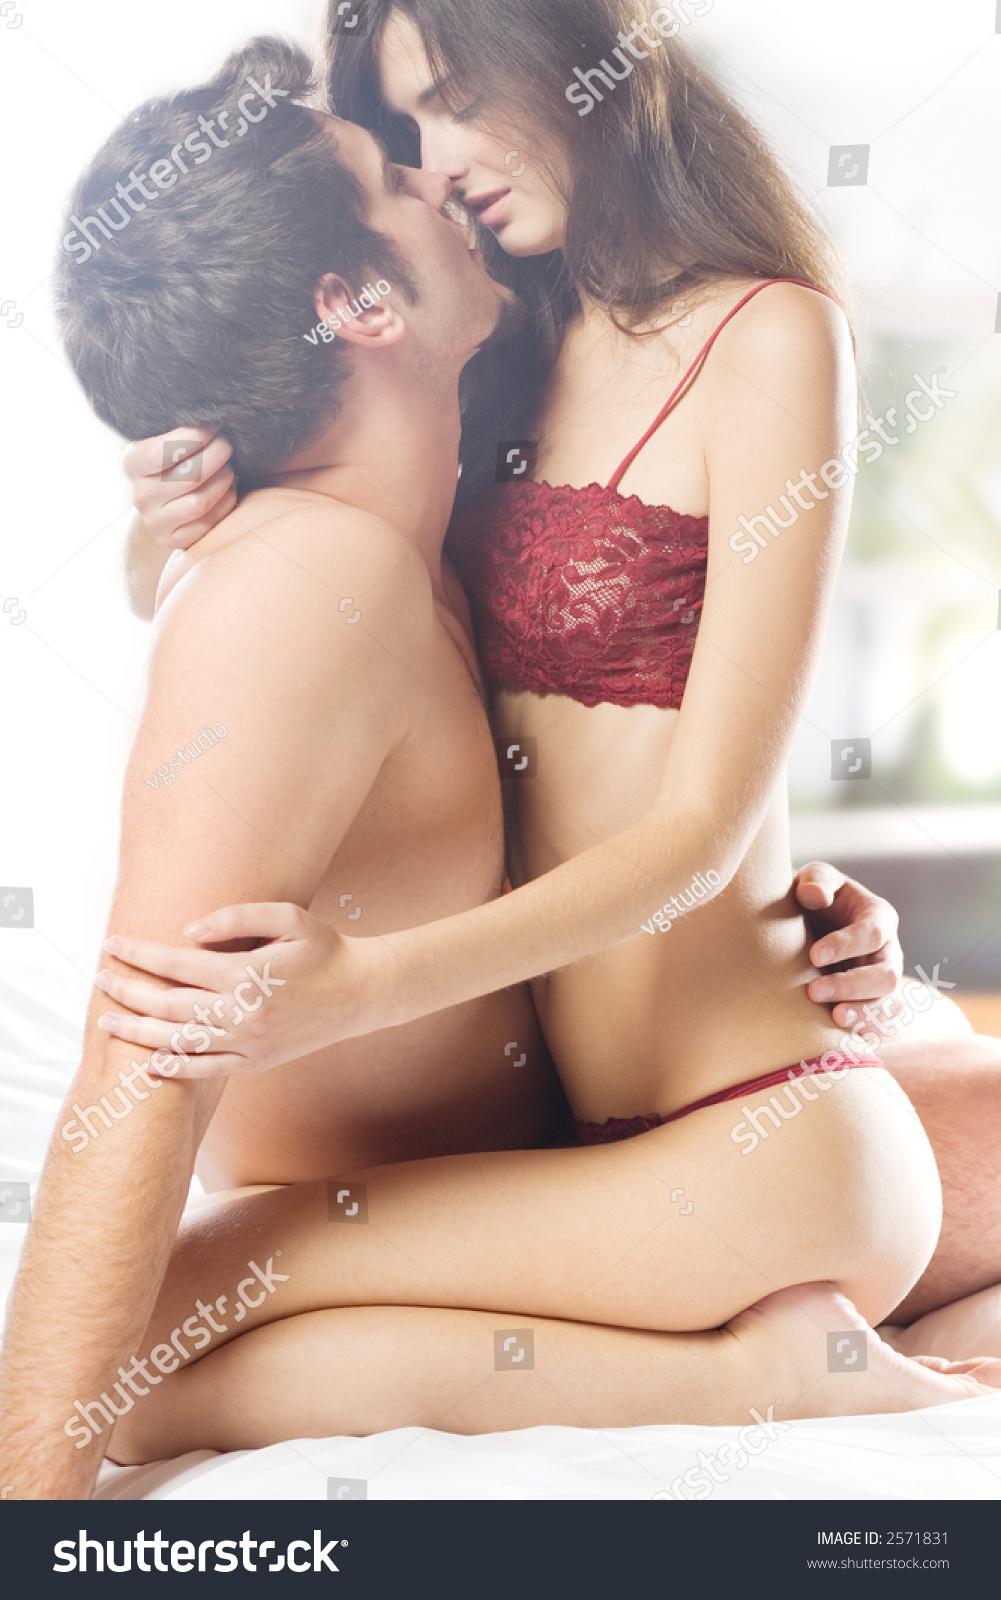 Adult couple hot photo site